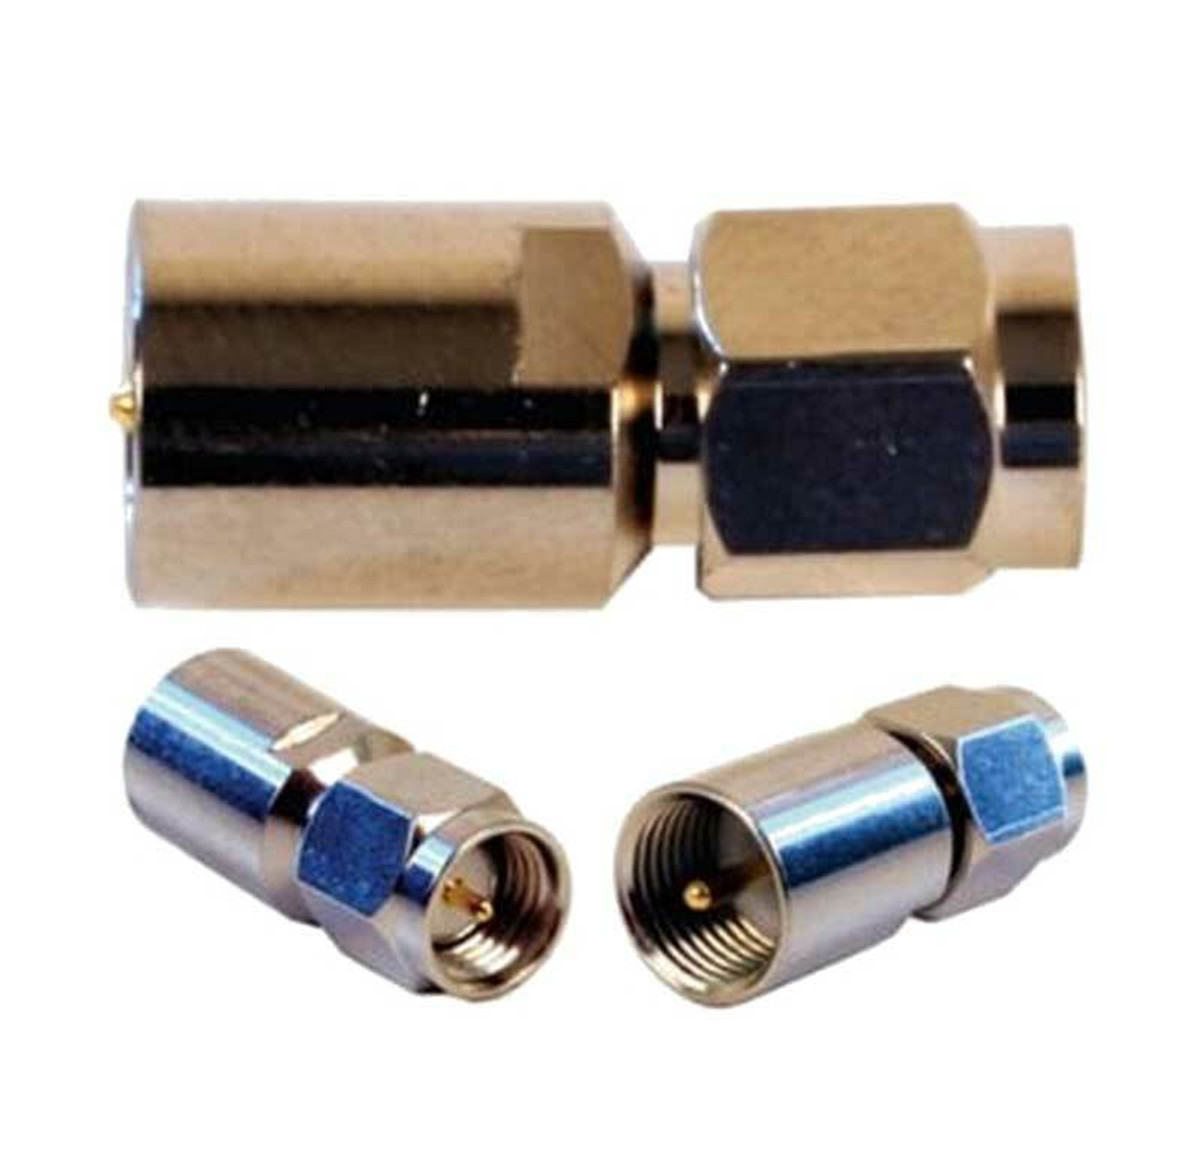 Wilson Electronics weBoost Wilson 971119 FME-Male to SMA-Male Connector